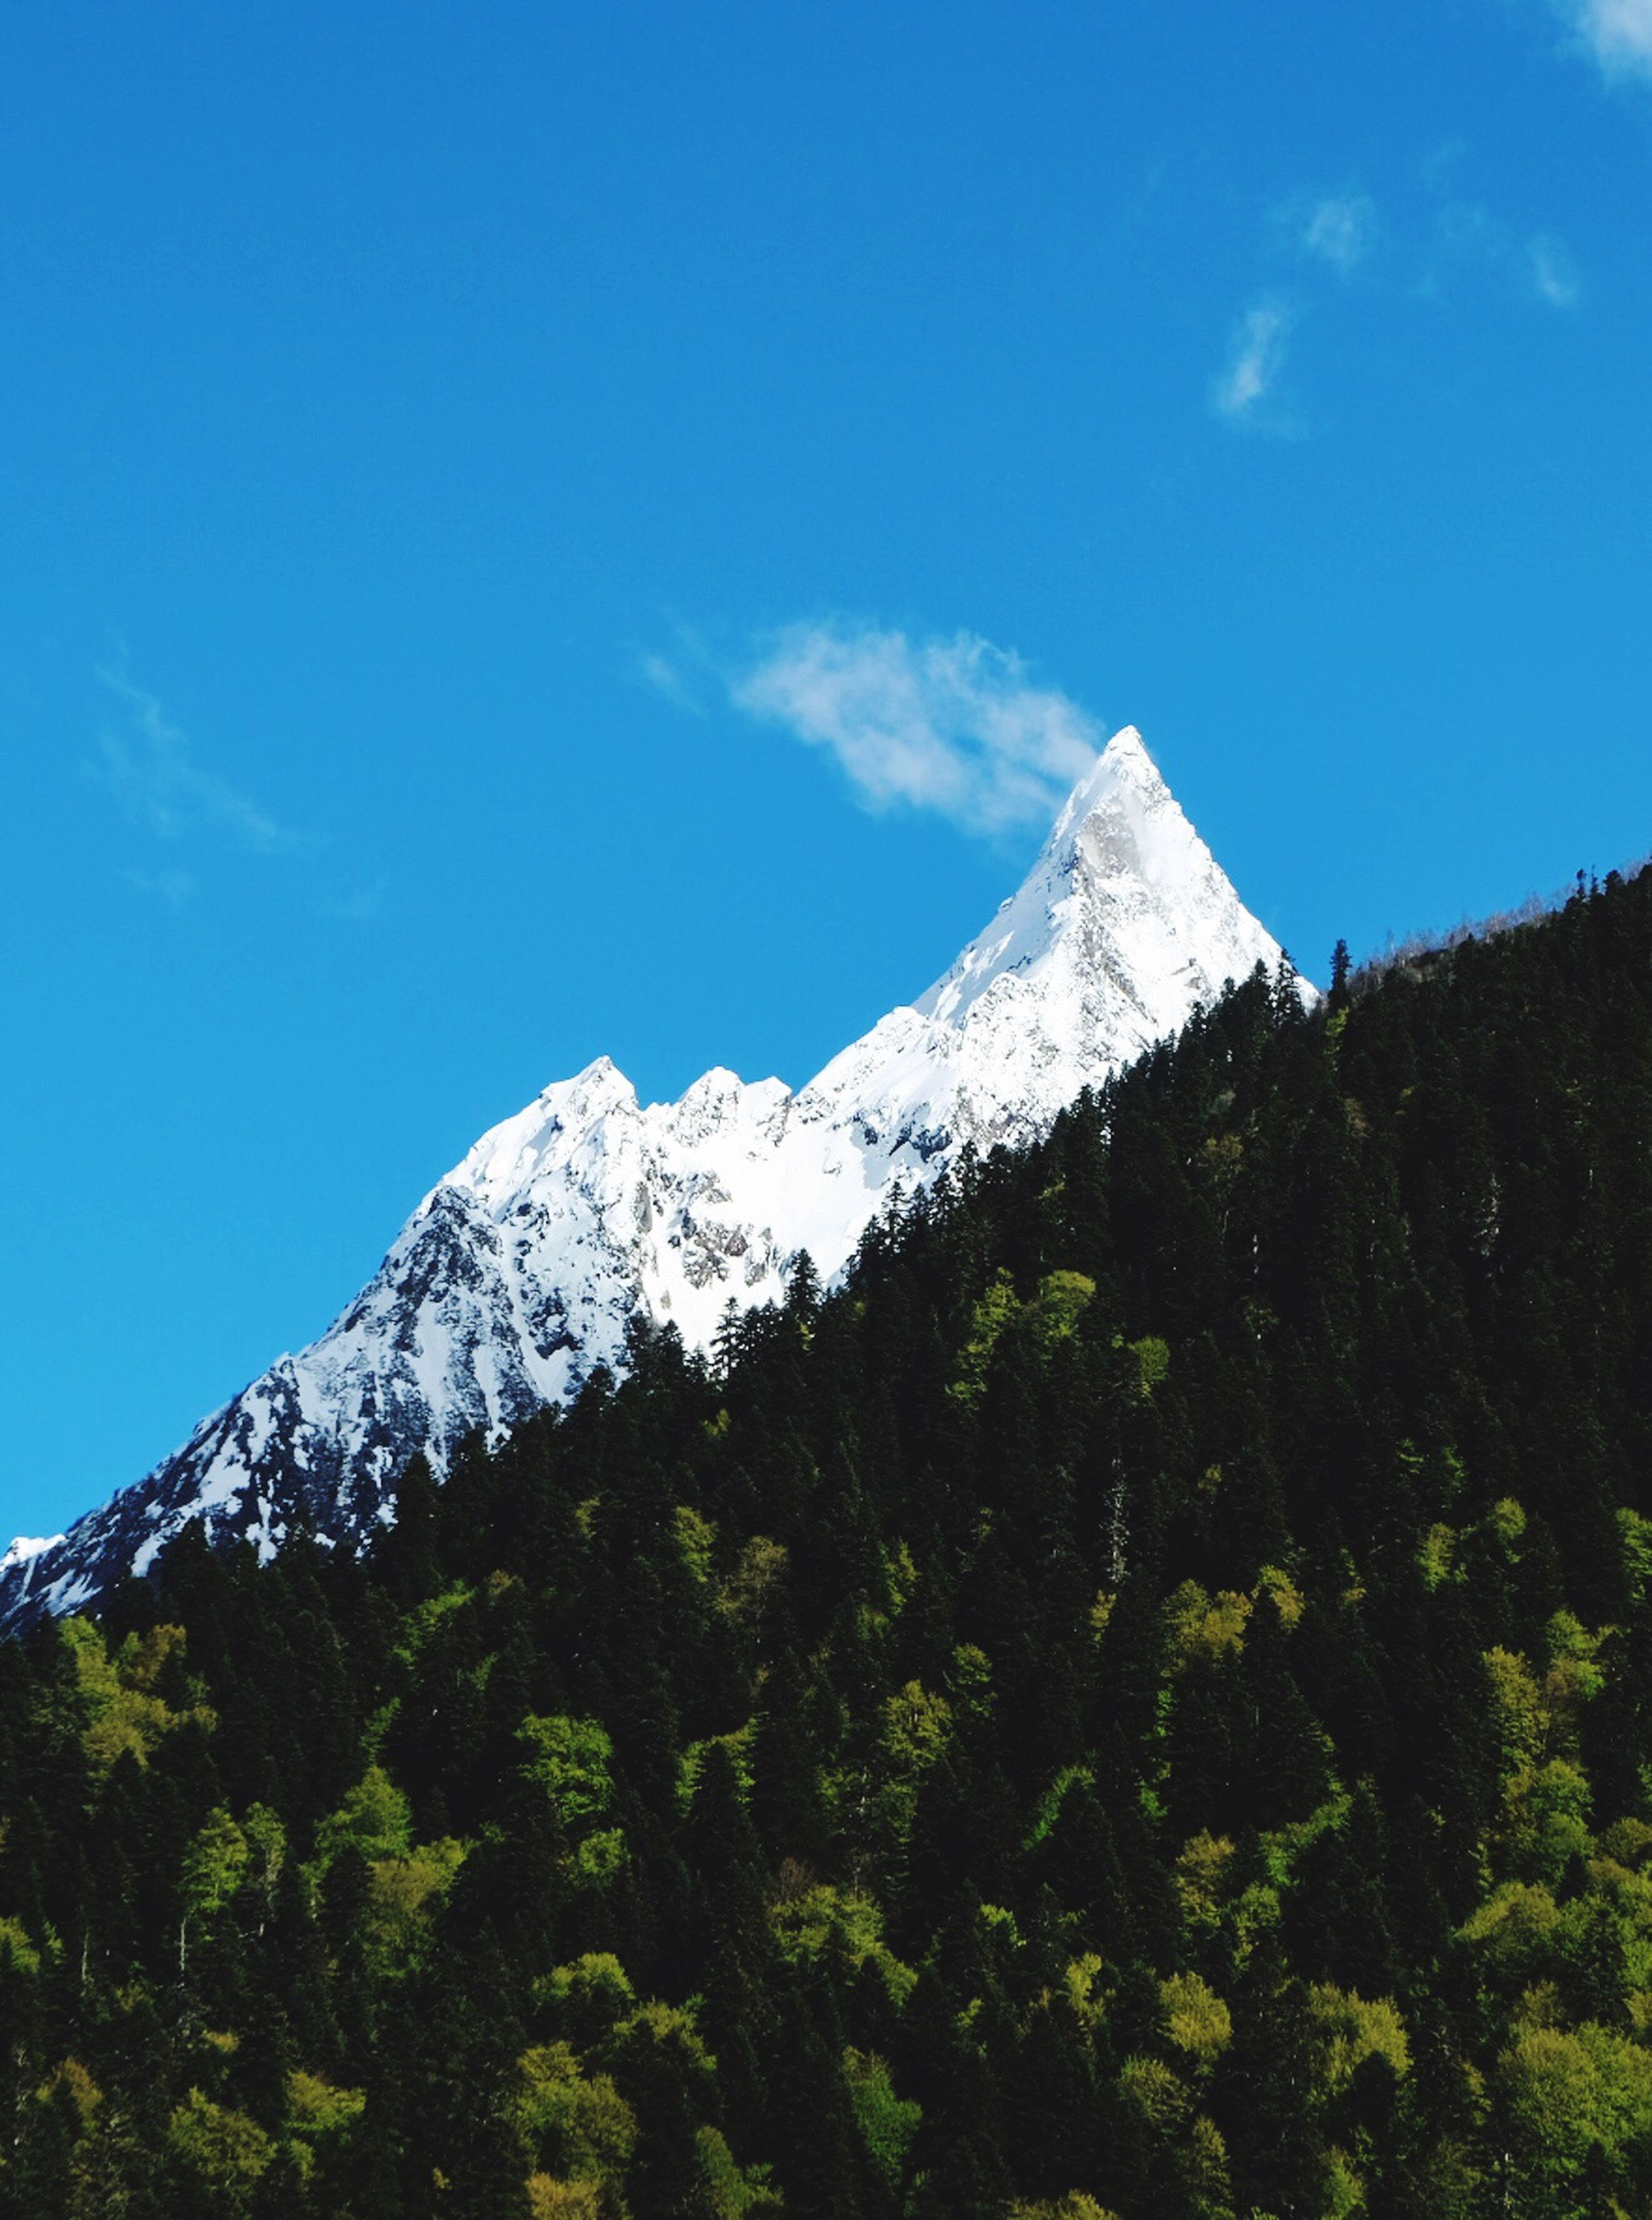 mountain, nature, snow, scenics, beauty in nature, tranquil scene, day, tranquility, mountain range, sky, winter, snowcapped mountain, tree, cold temperature, blue sky, peak, outdoors, blue, landscape, no people, range